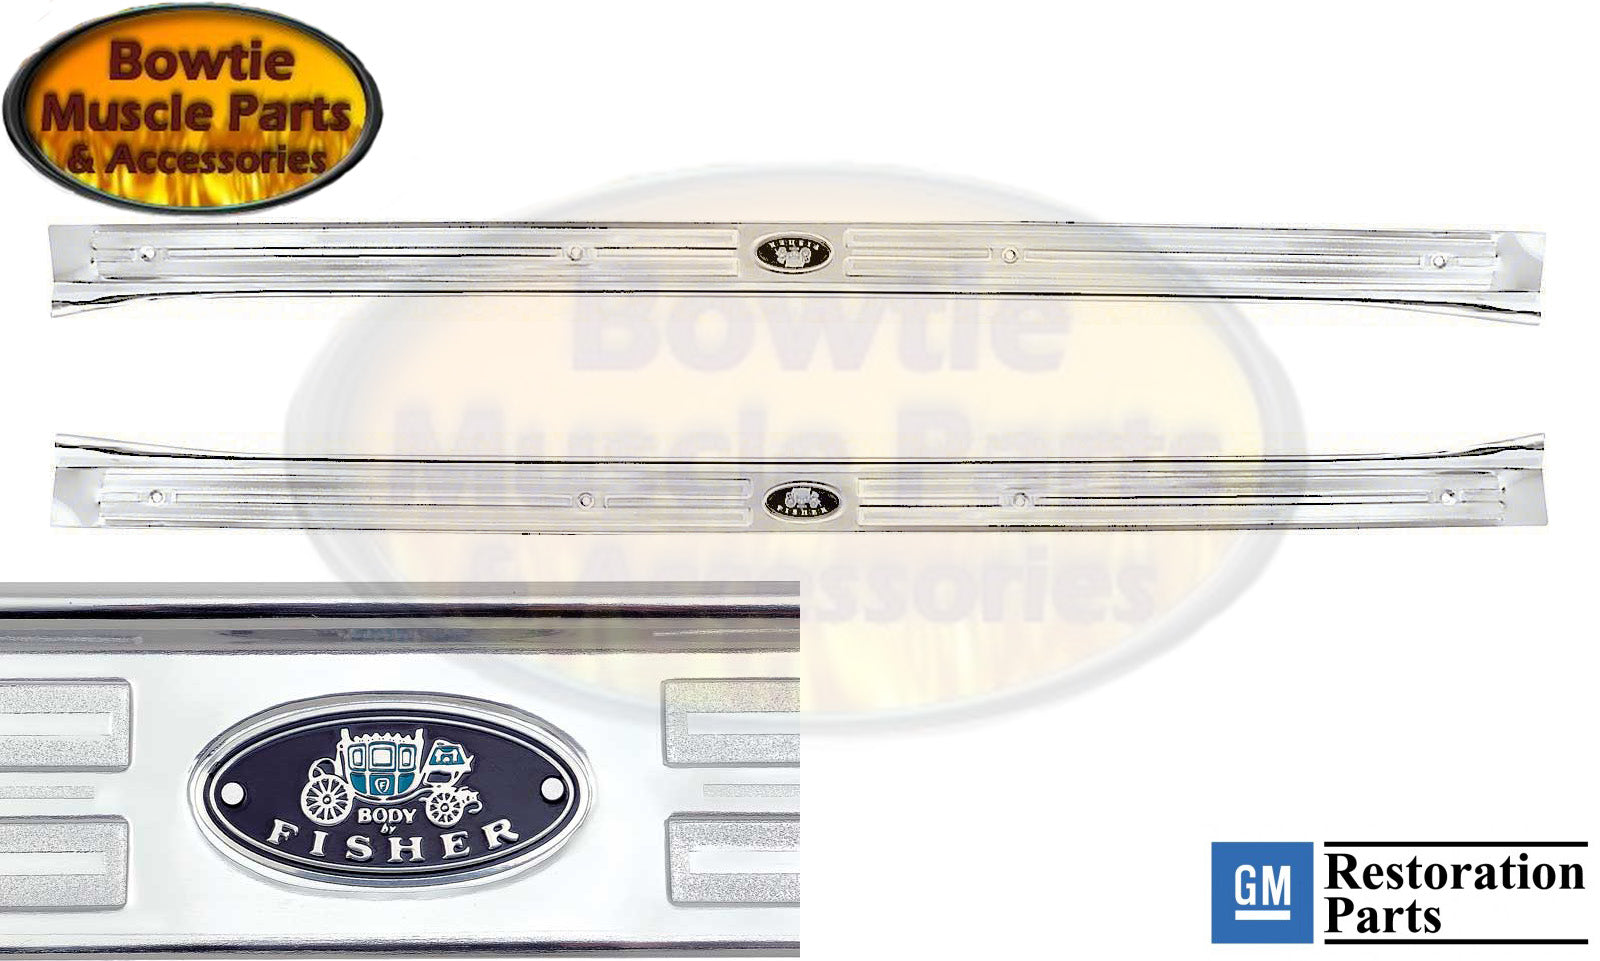 67 68 69 CAMARO FIREBIRD BODY BY FISHER DOOR SILL PLATES GM LICENSED PAIR